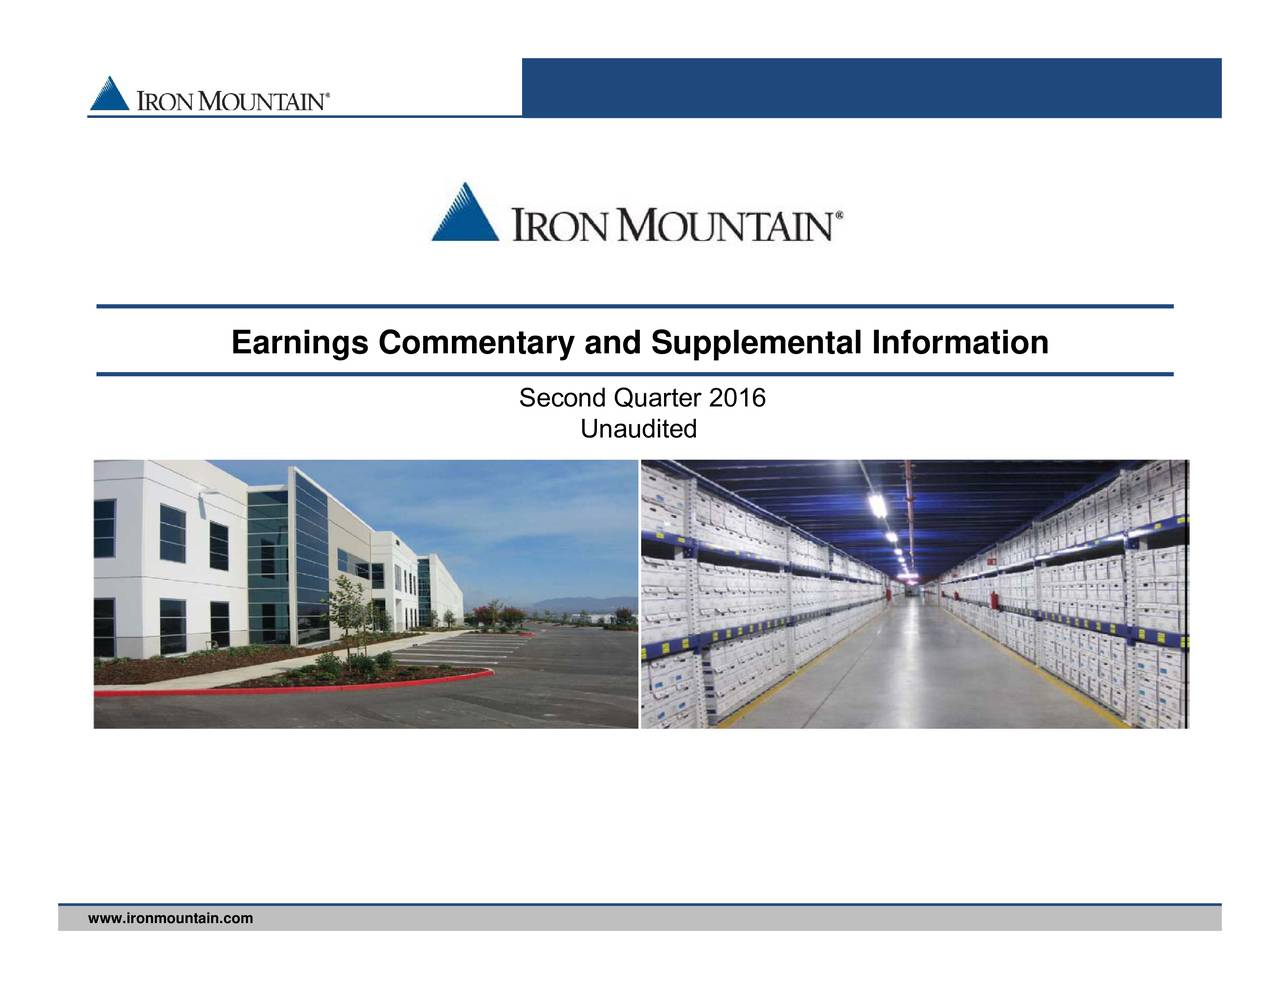 Second Quarter 2016 Earnings Commentary and Supplemental Information www.ironmountain.com